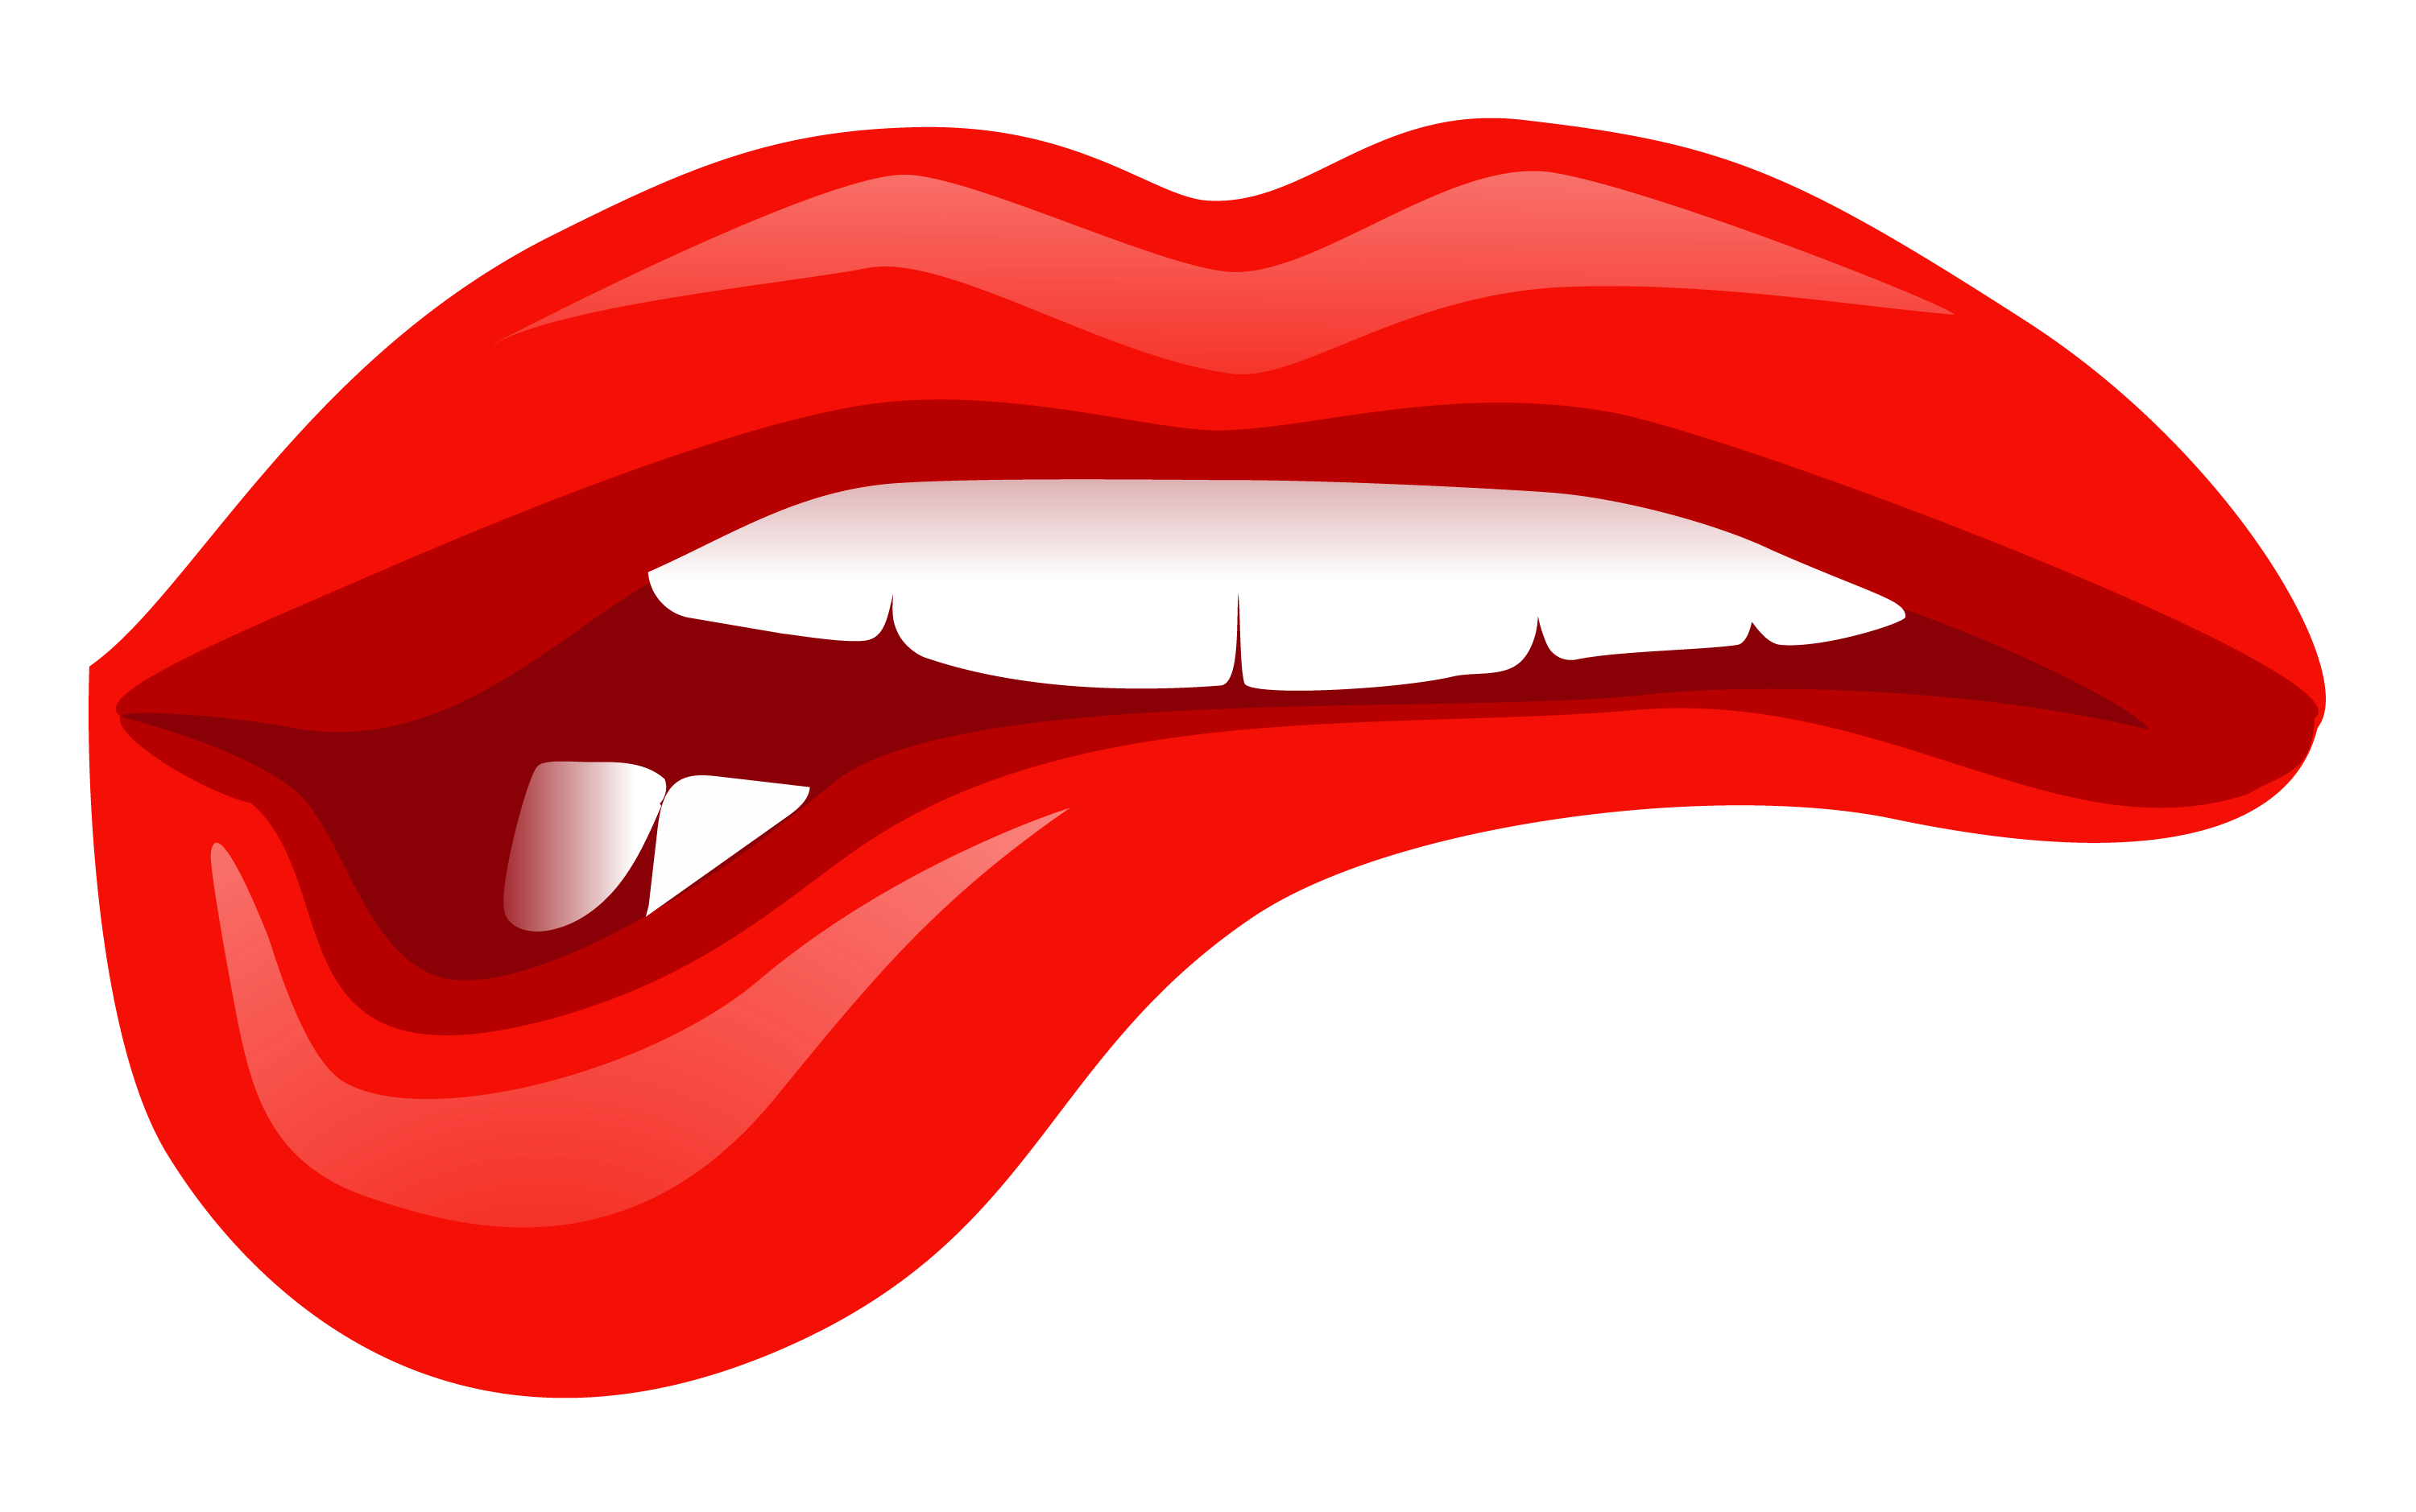 3000x1878 Red Lips Kiss Png Transparent Clipart Image